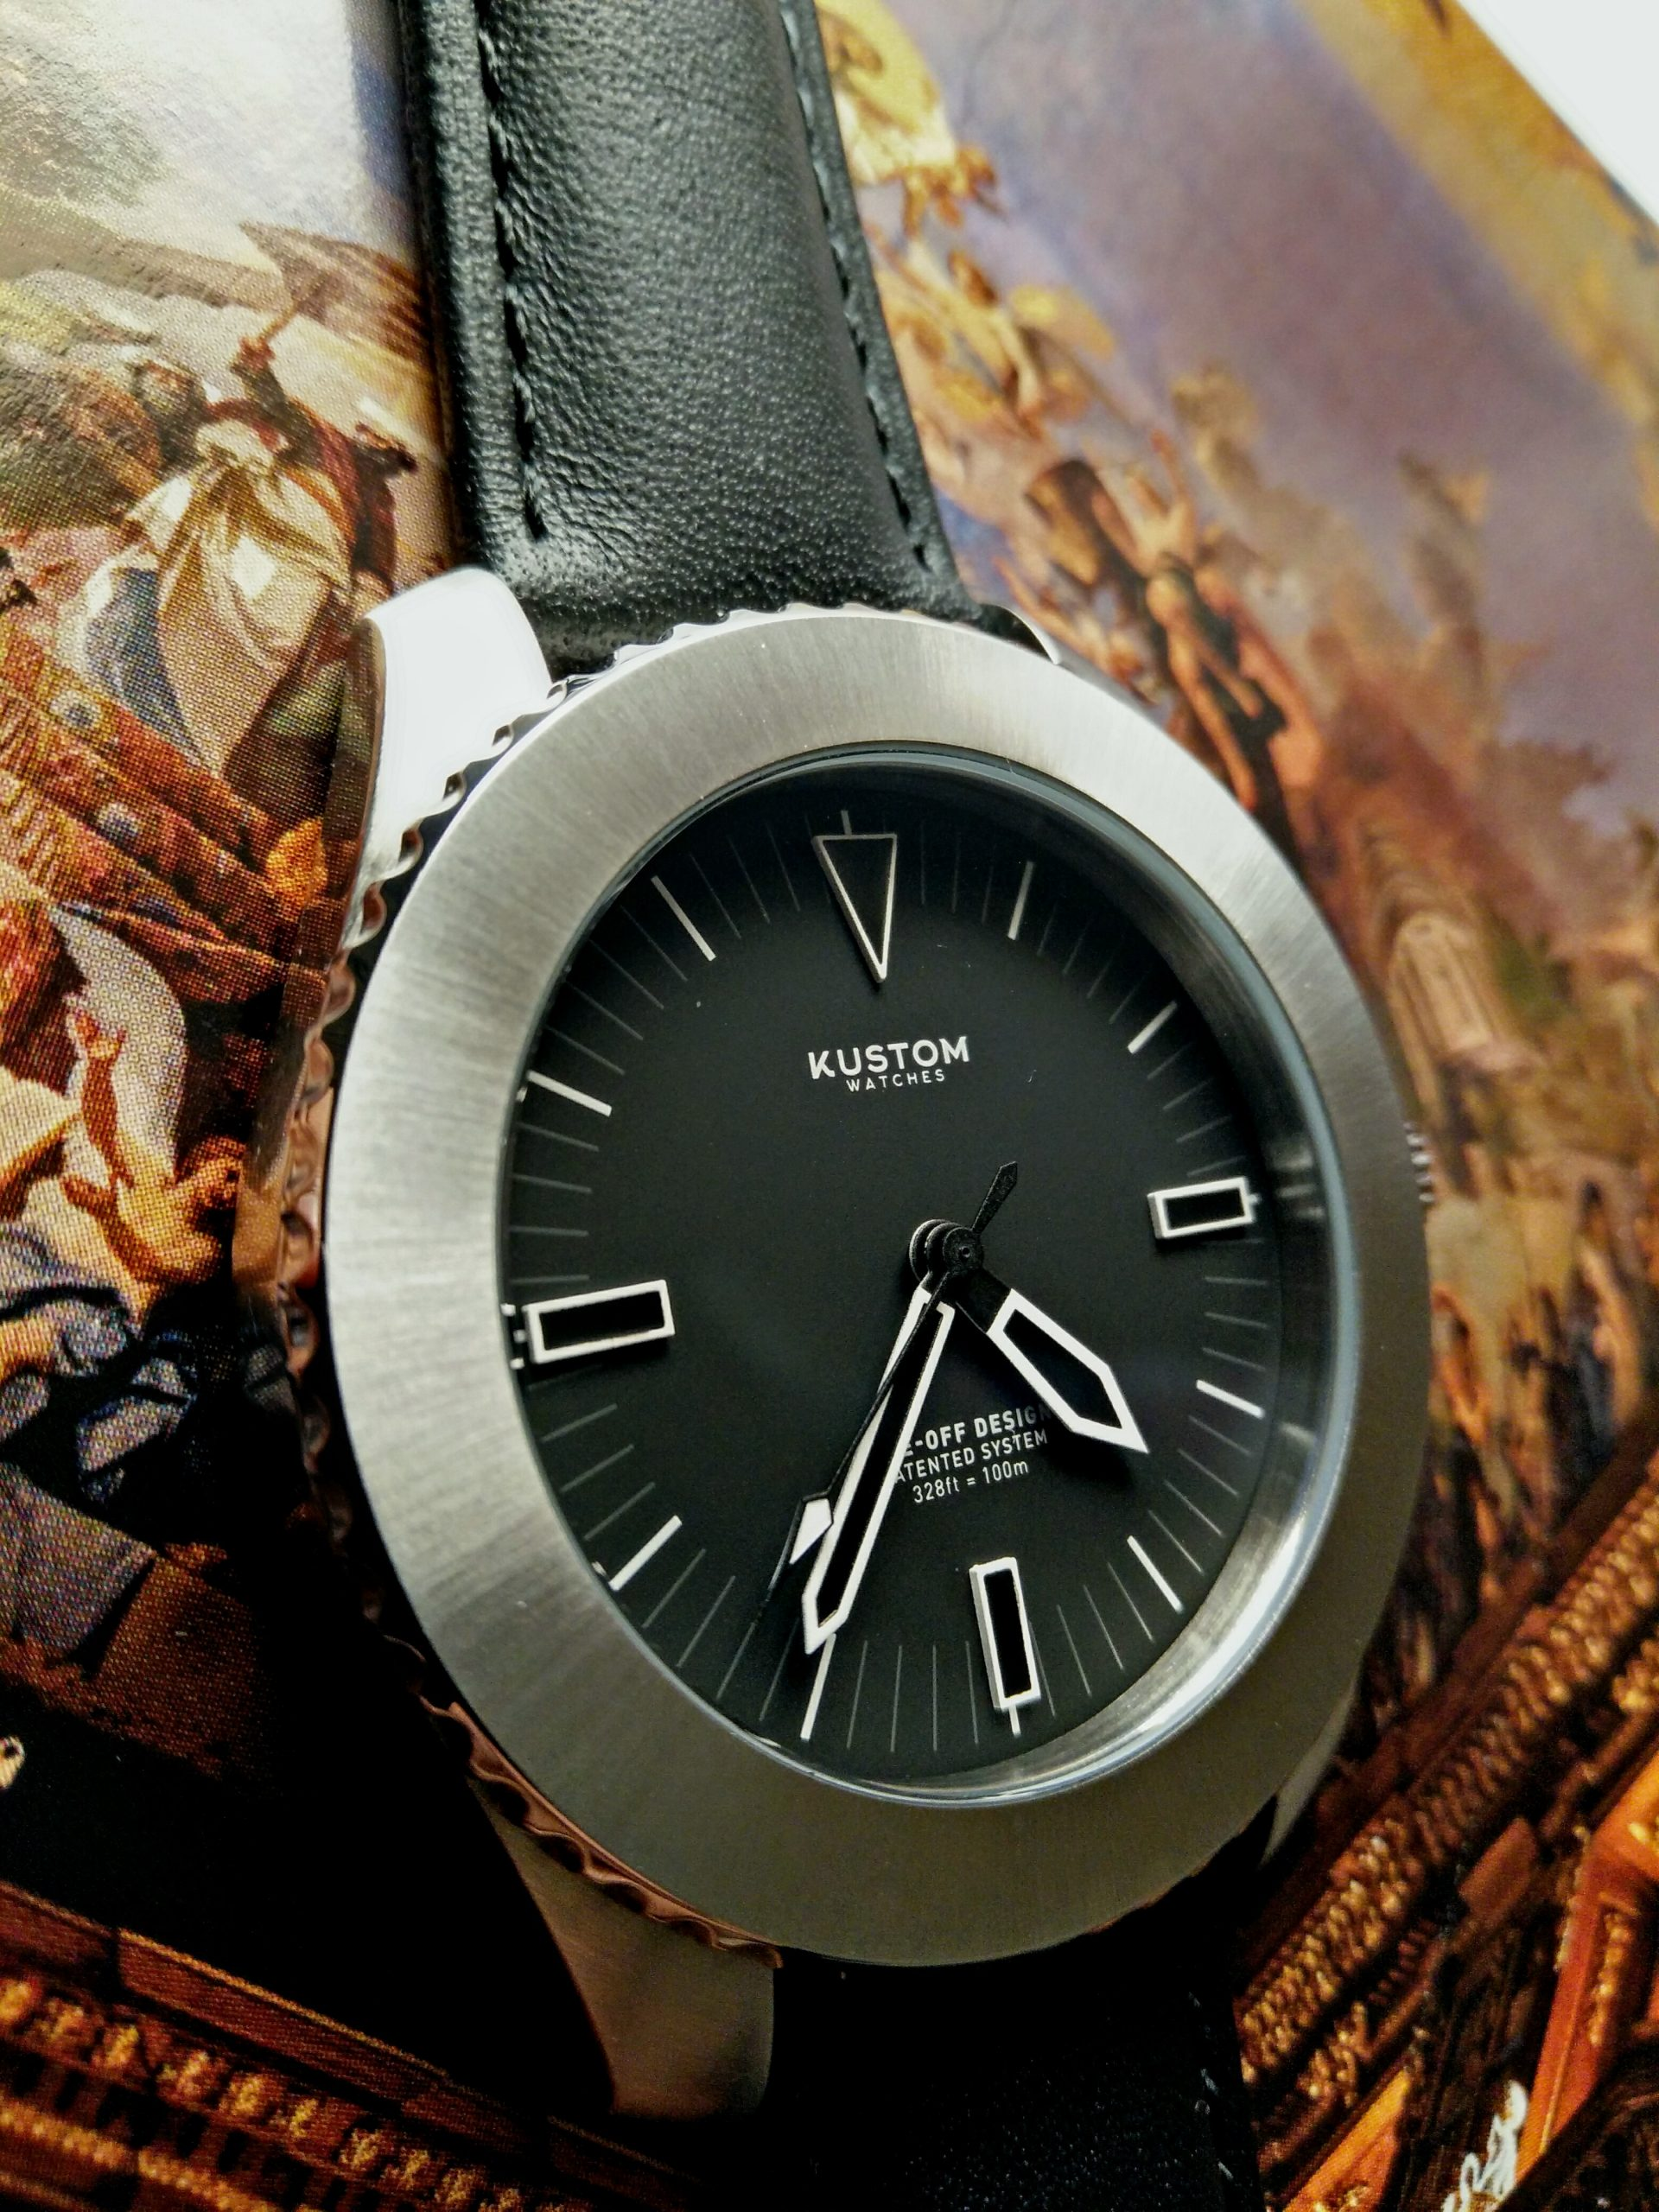 Kustom watches side